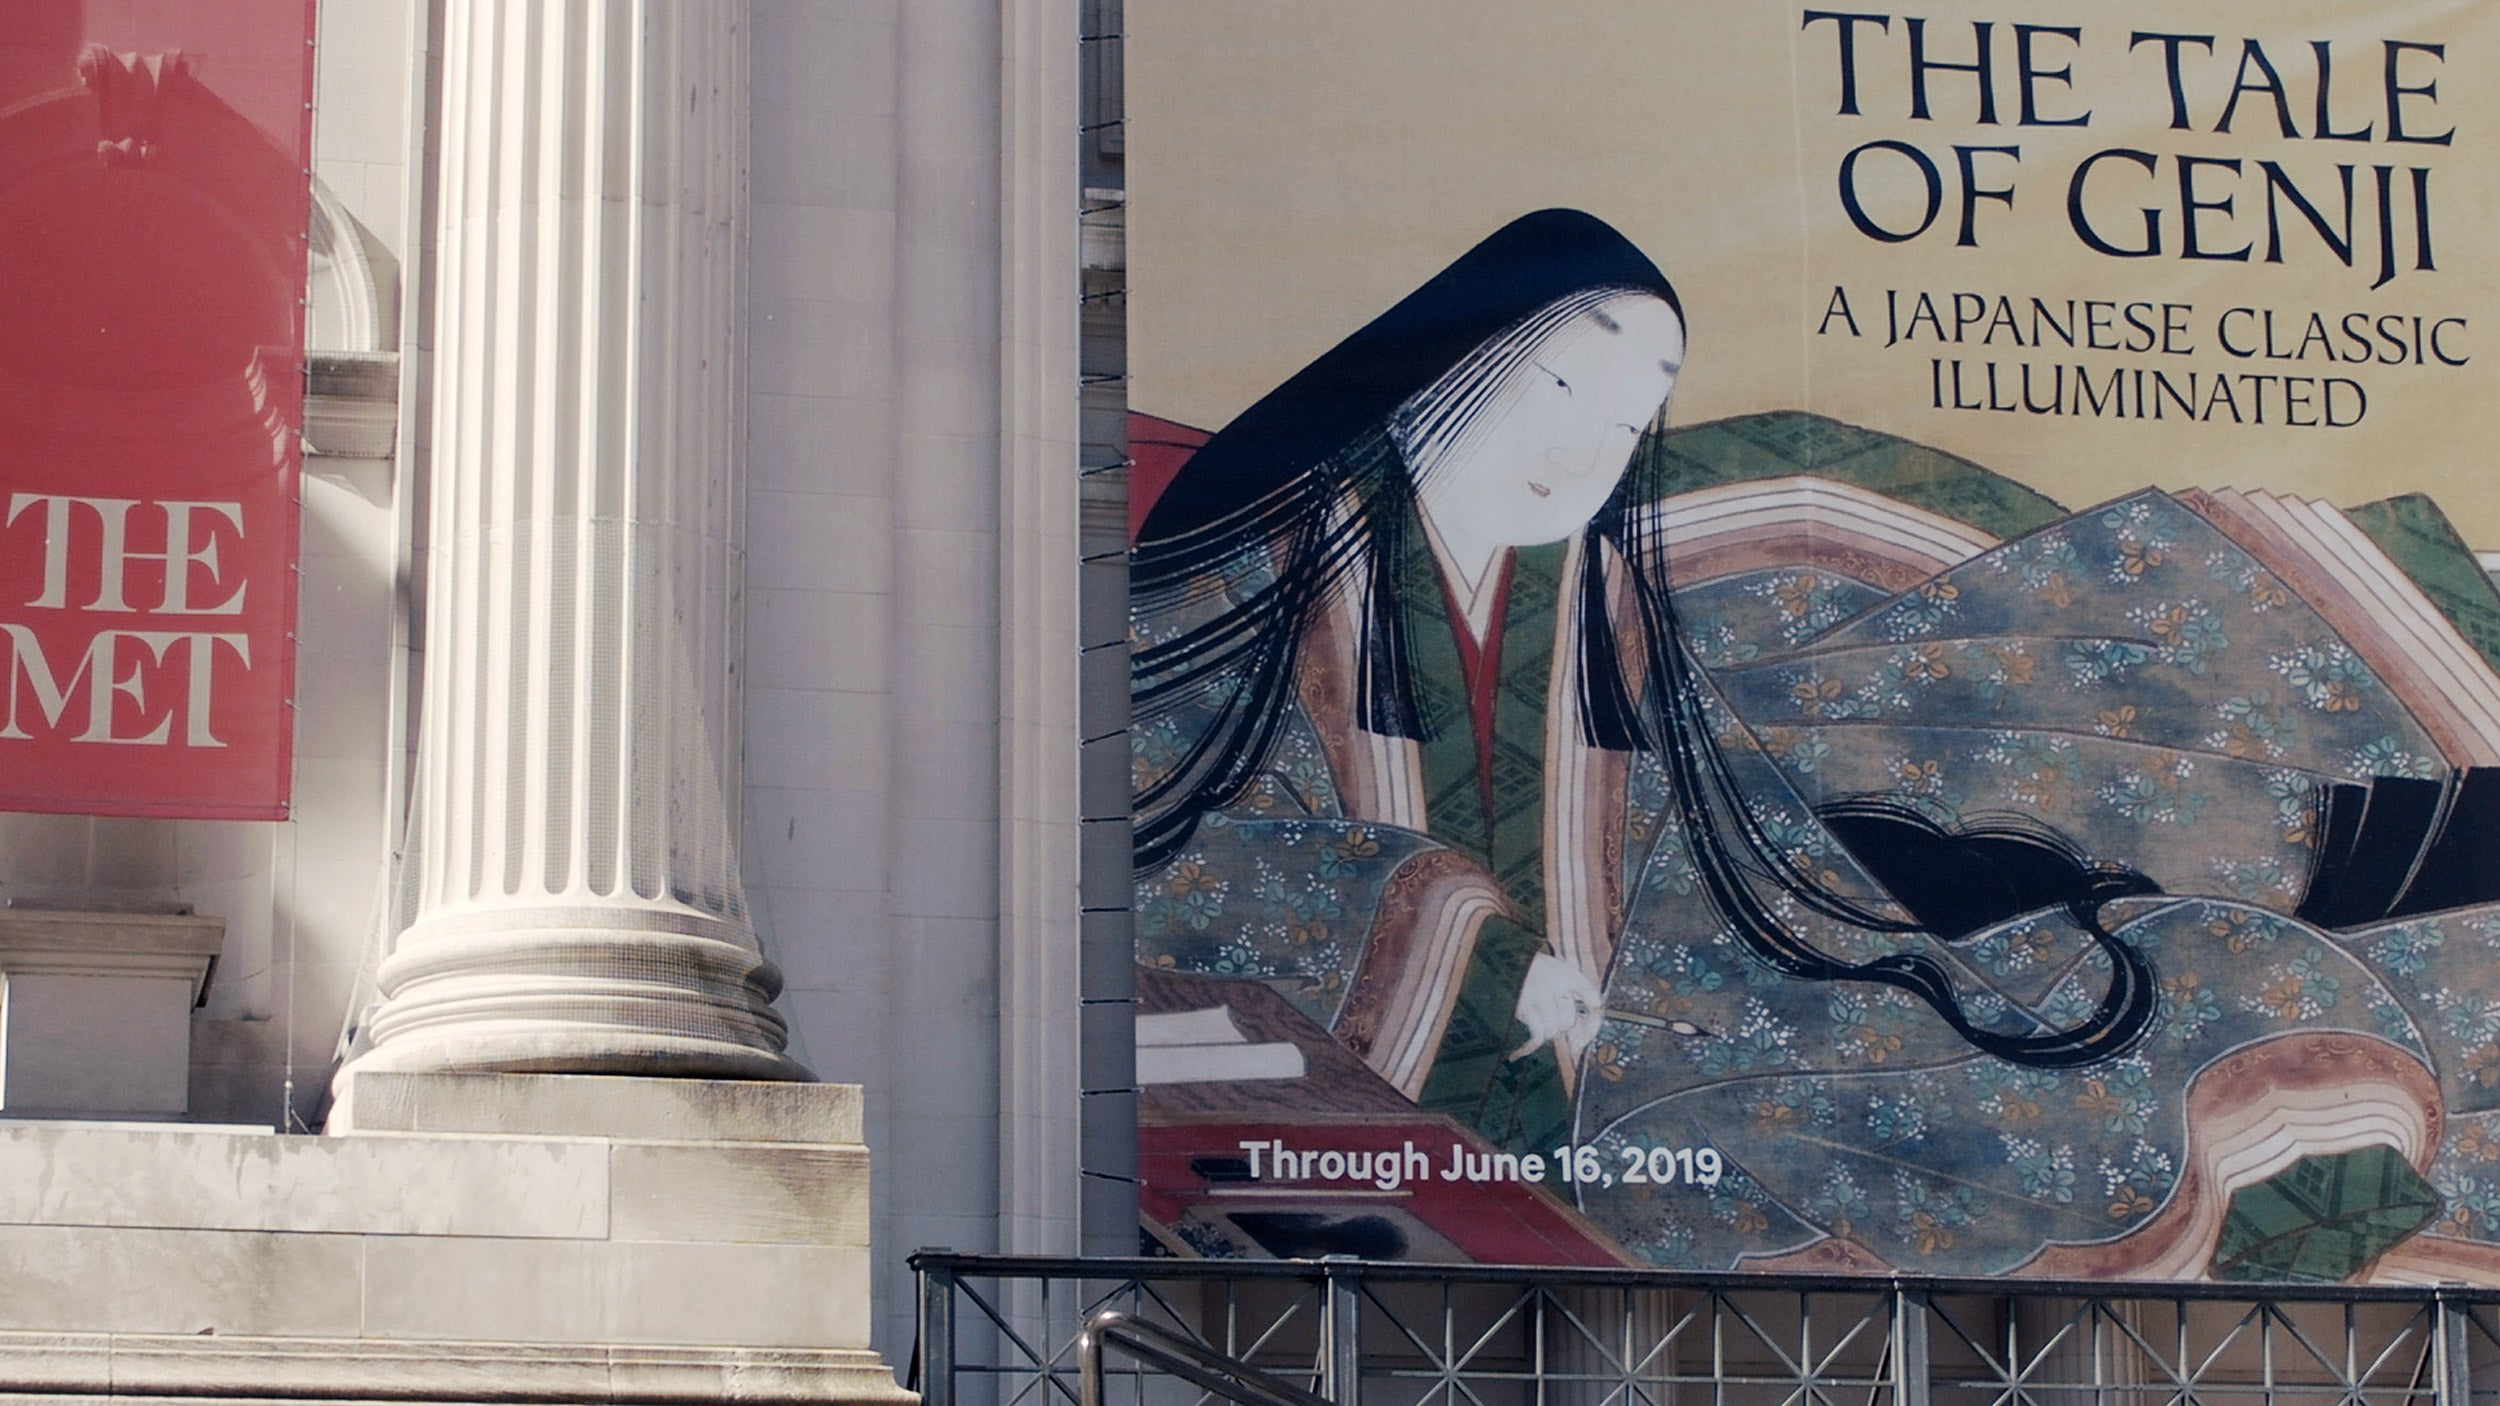 Banner advertising Gengi exhibit outside the Met